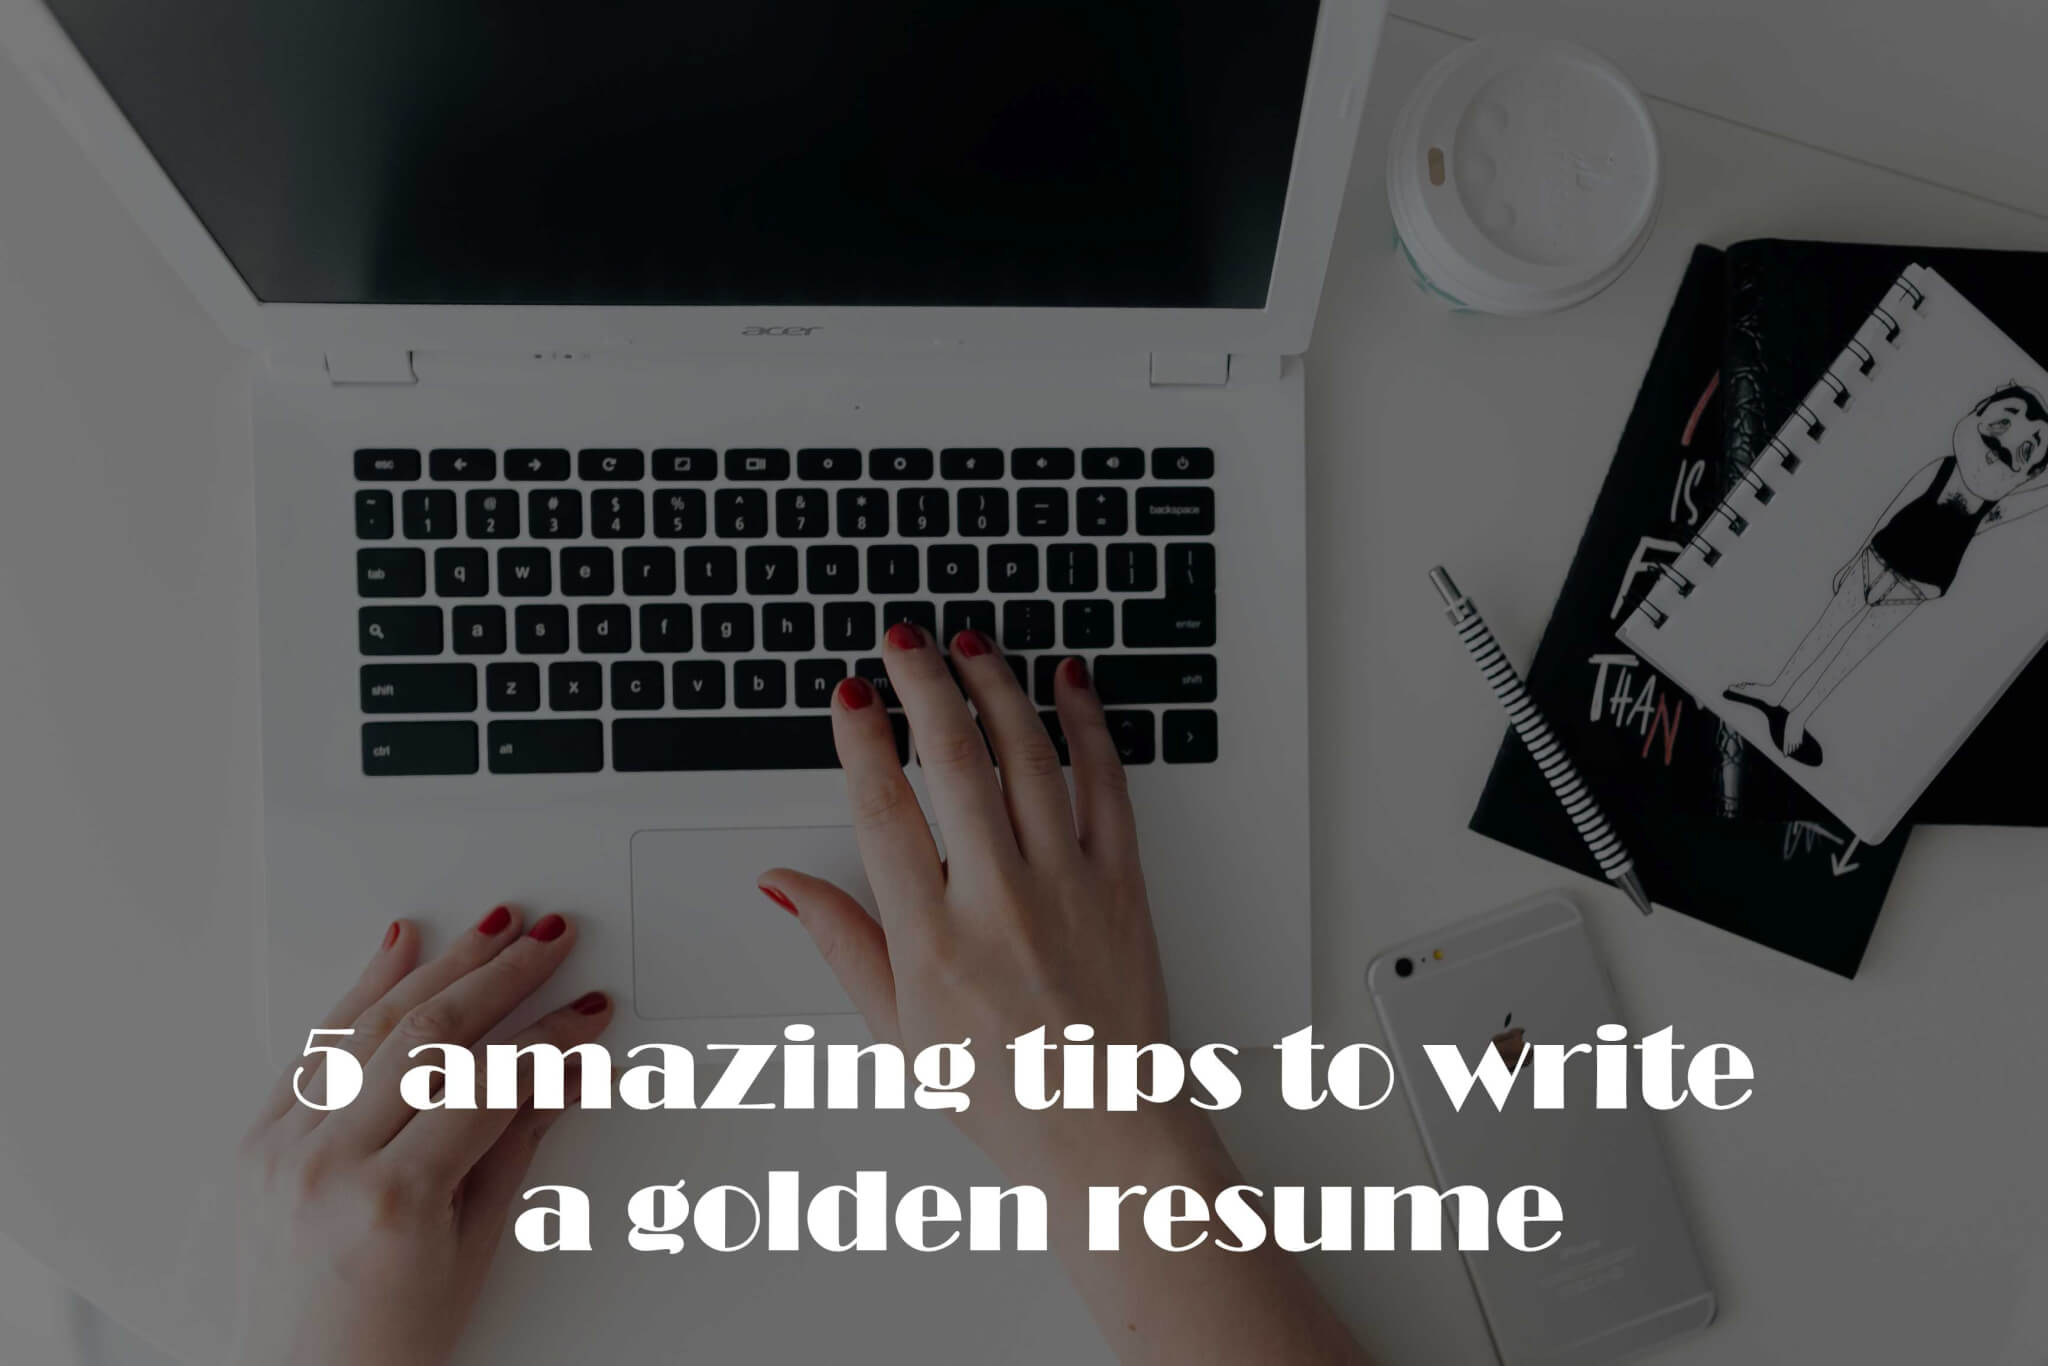 5 amazing tips to write a golden resume